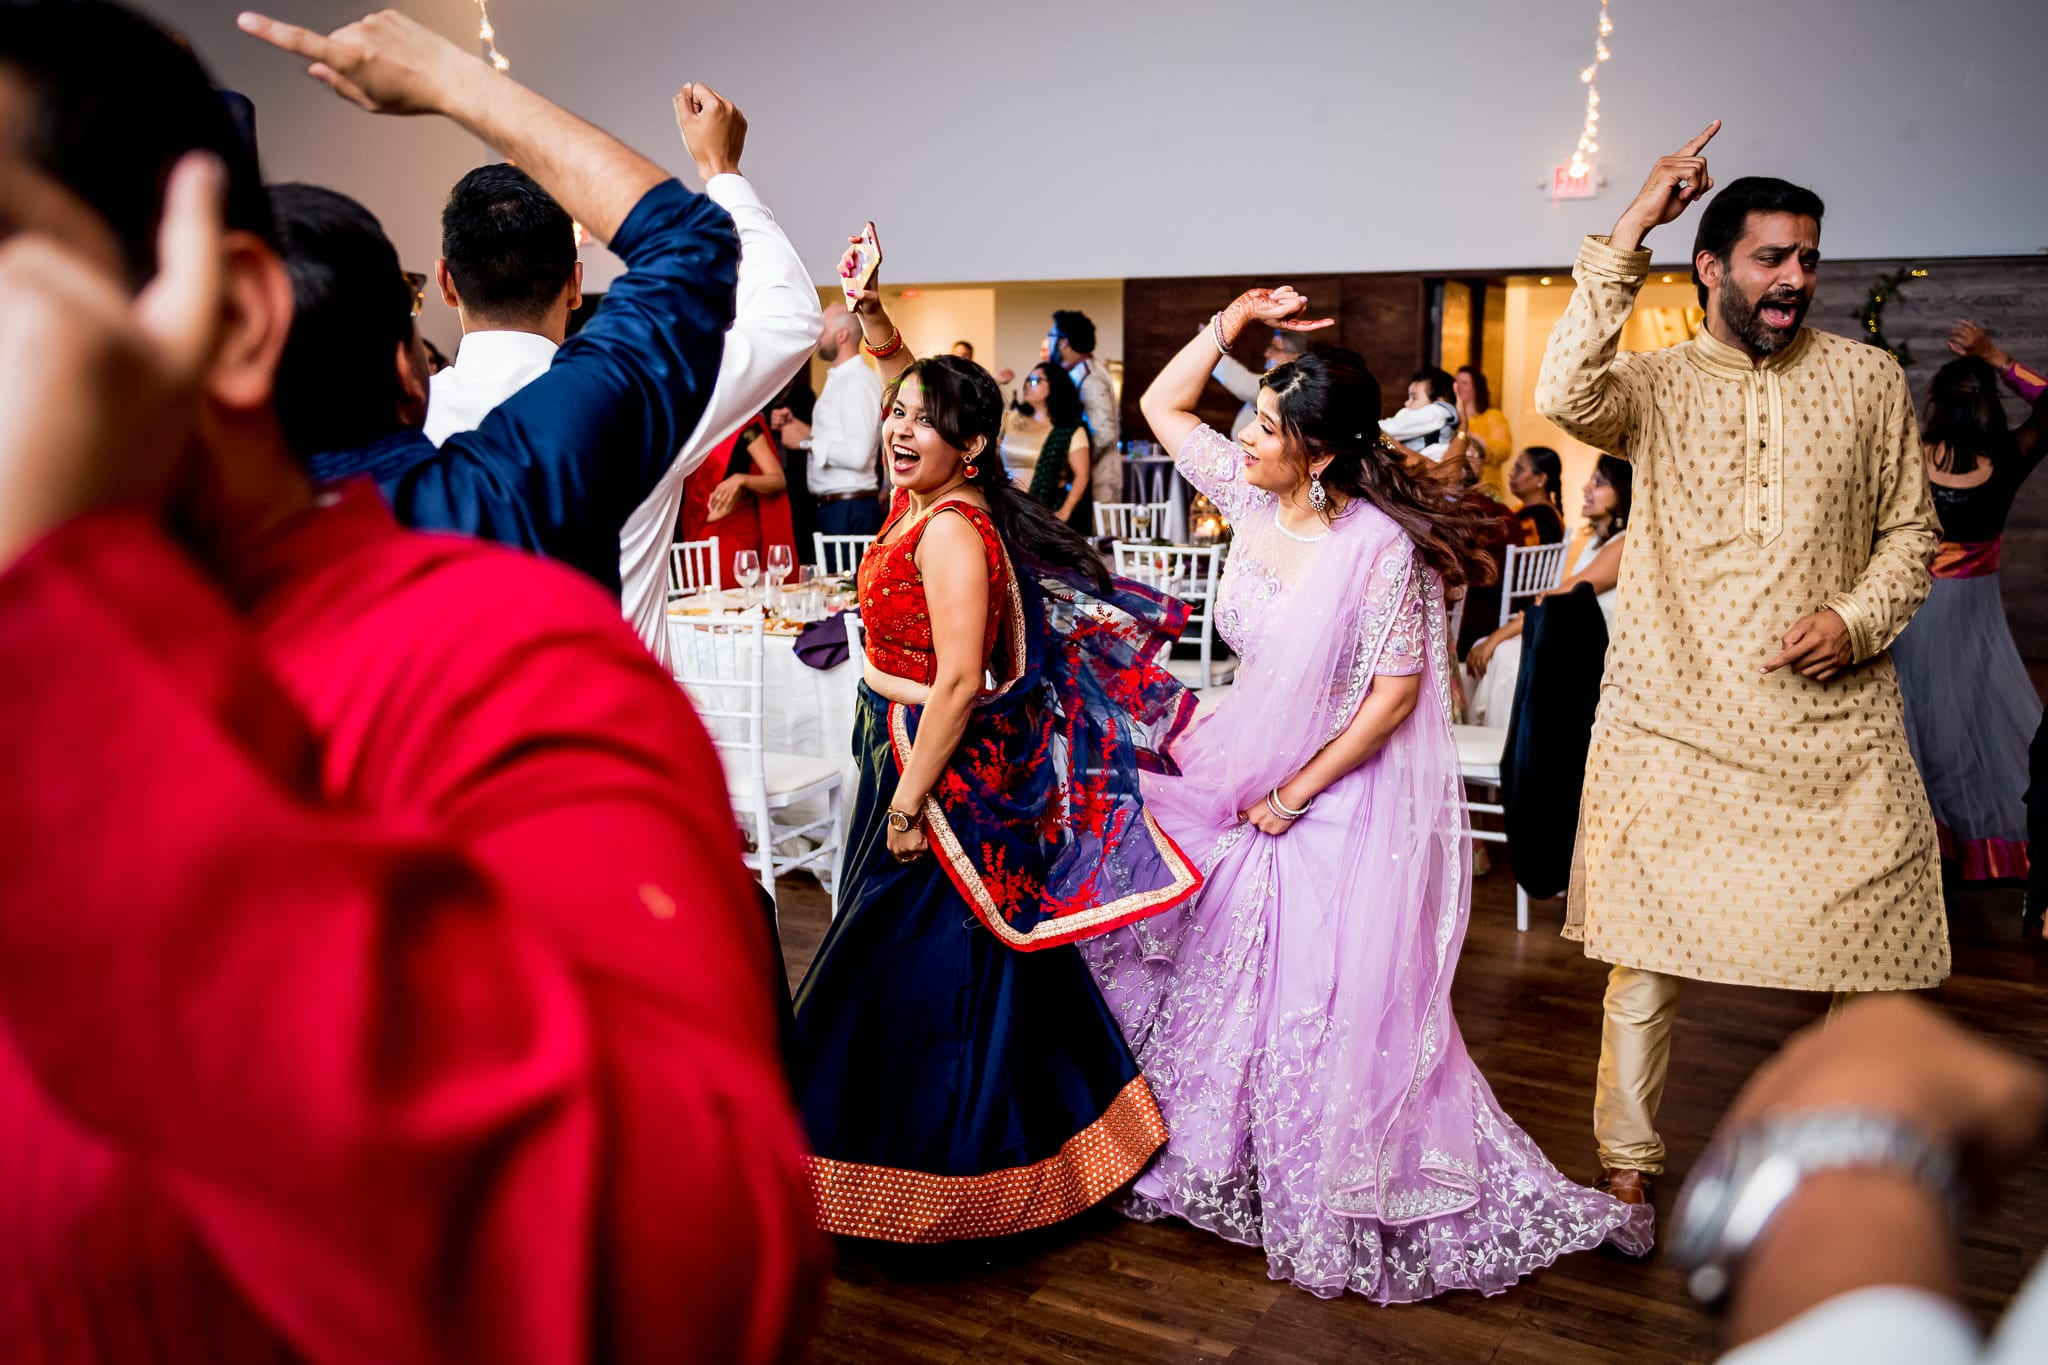 Wedding guests passionately dancing with bride during wedding reception at The Blaisdell